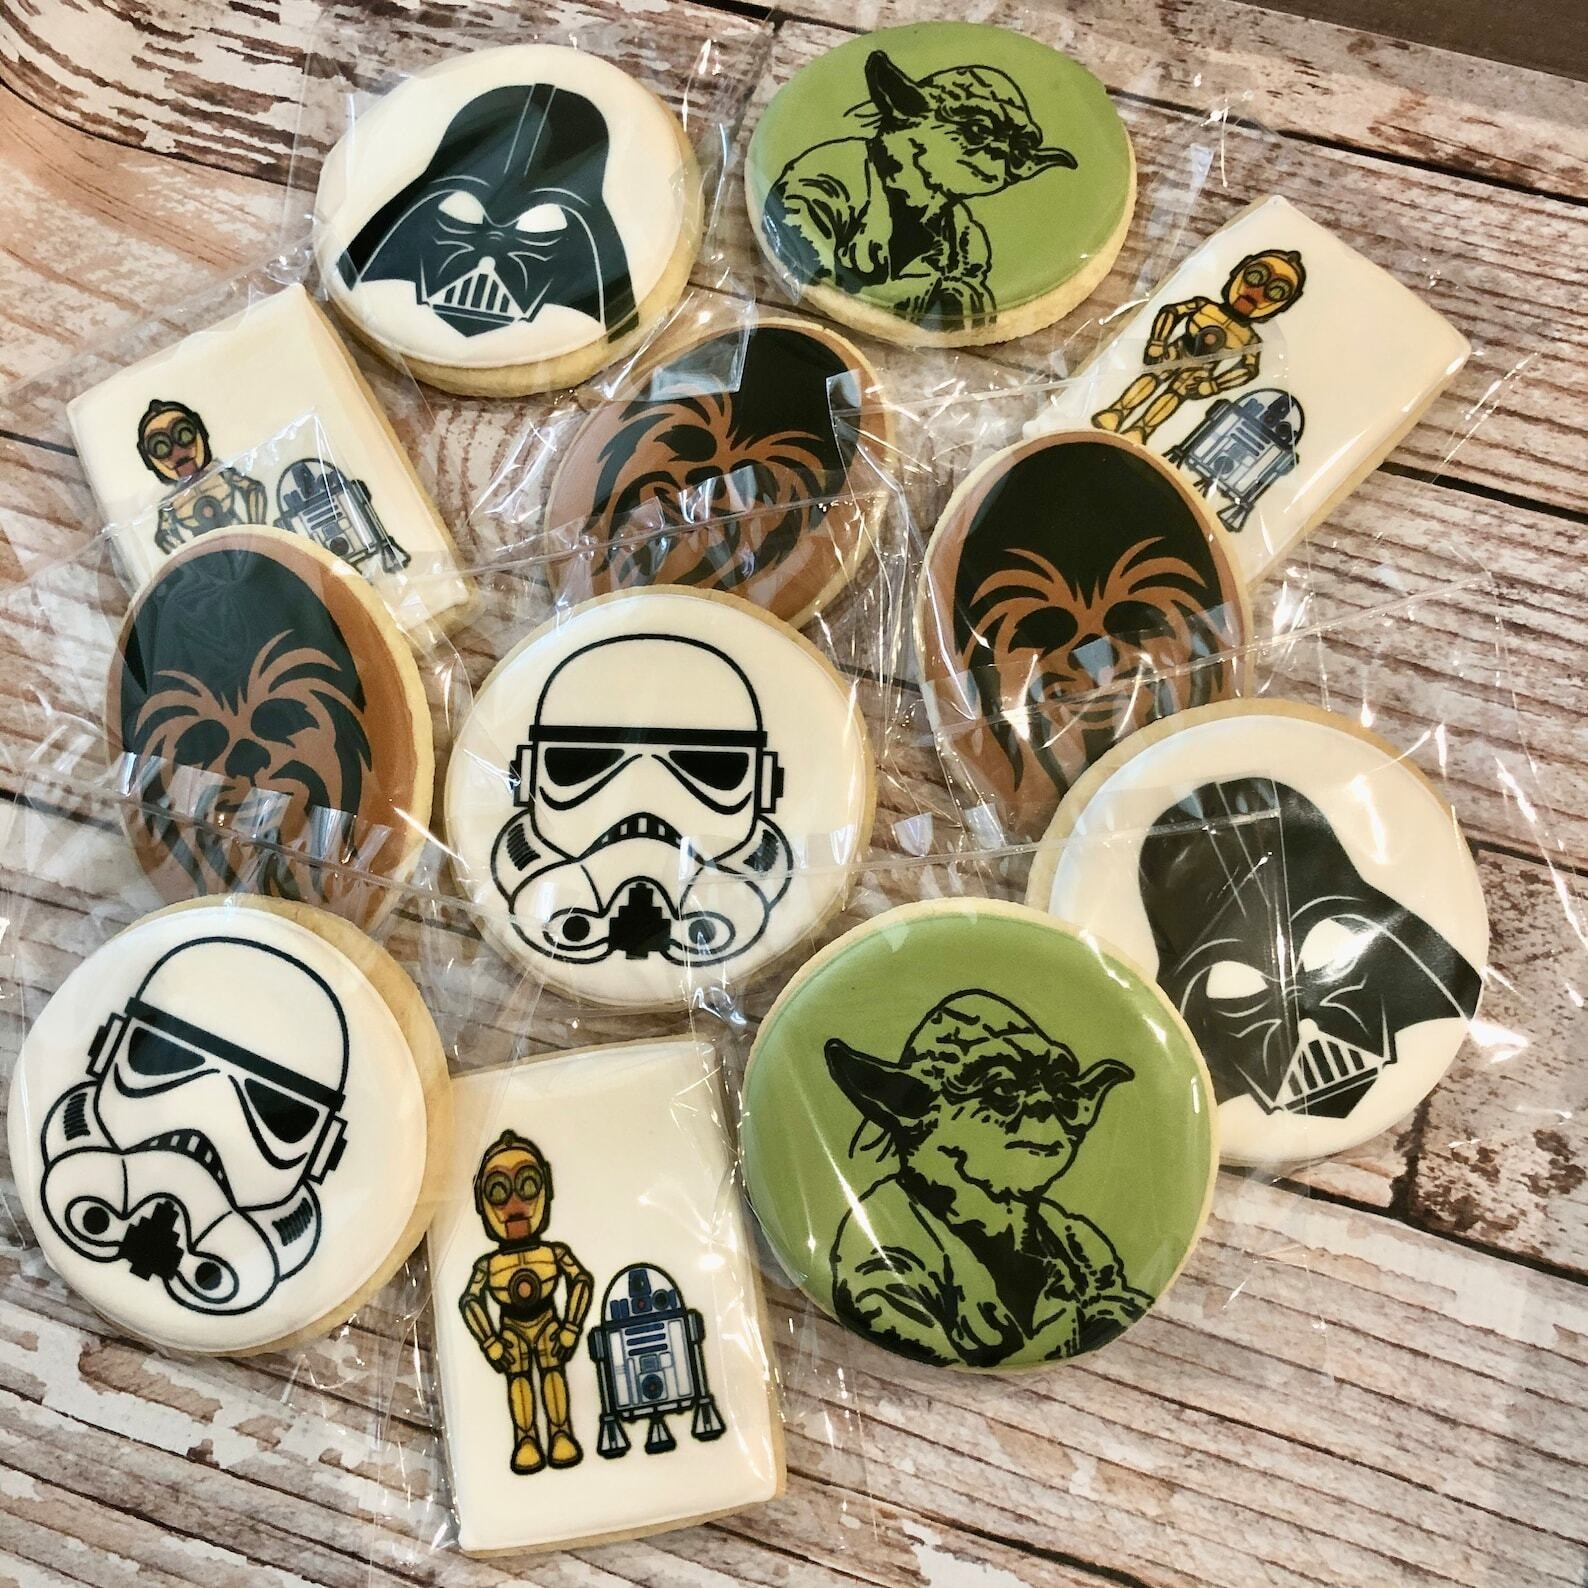 several cookies with printed star wars characters in the frosting on top